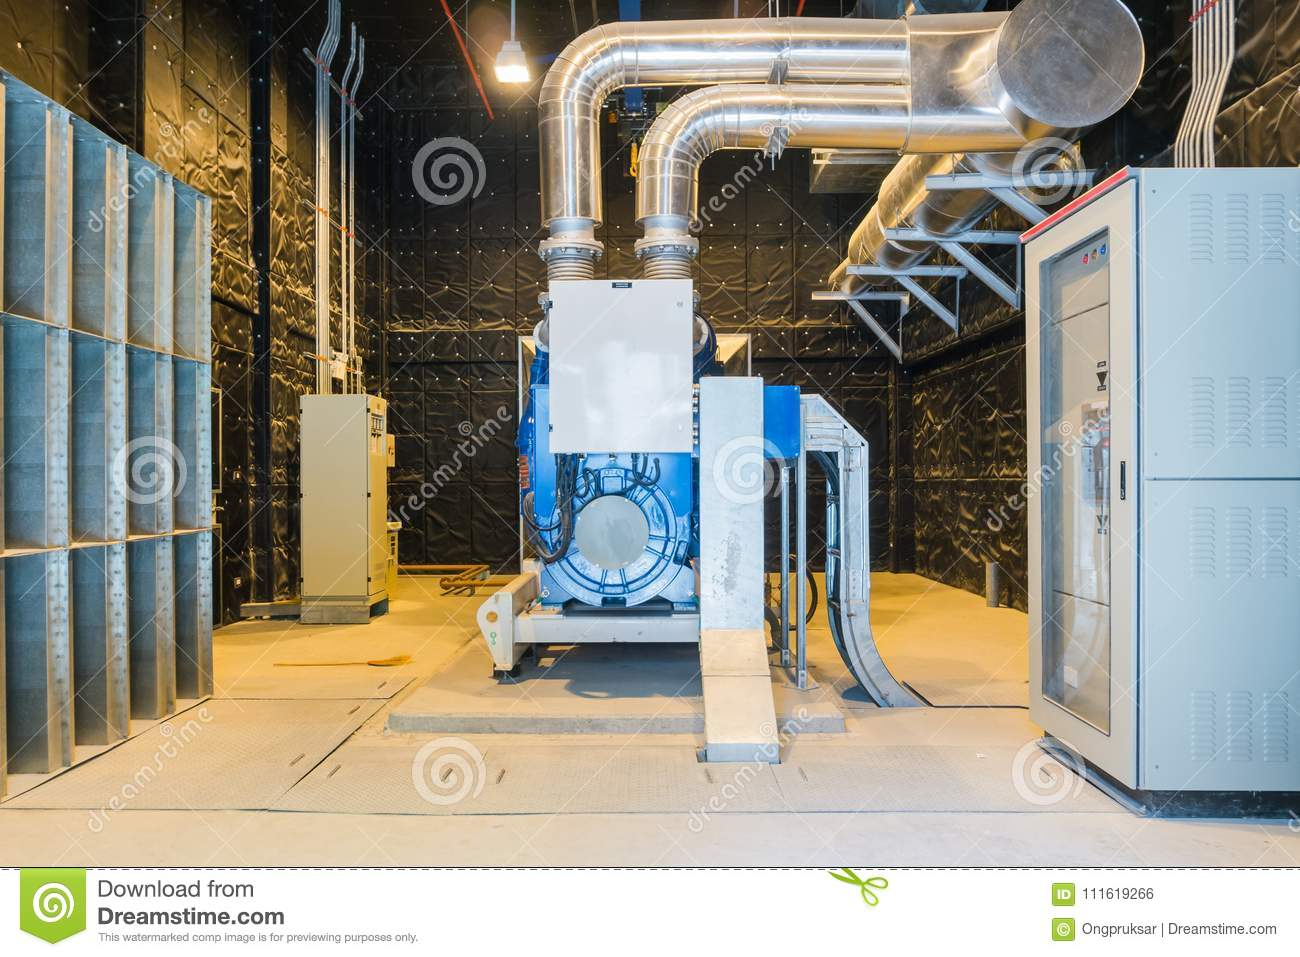 standby power generator or emergency diesel generator unit mounted radiator  and fuel filter system  reduce risk, loss and backup business to protect